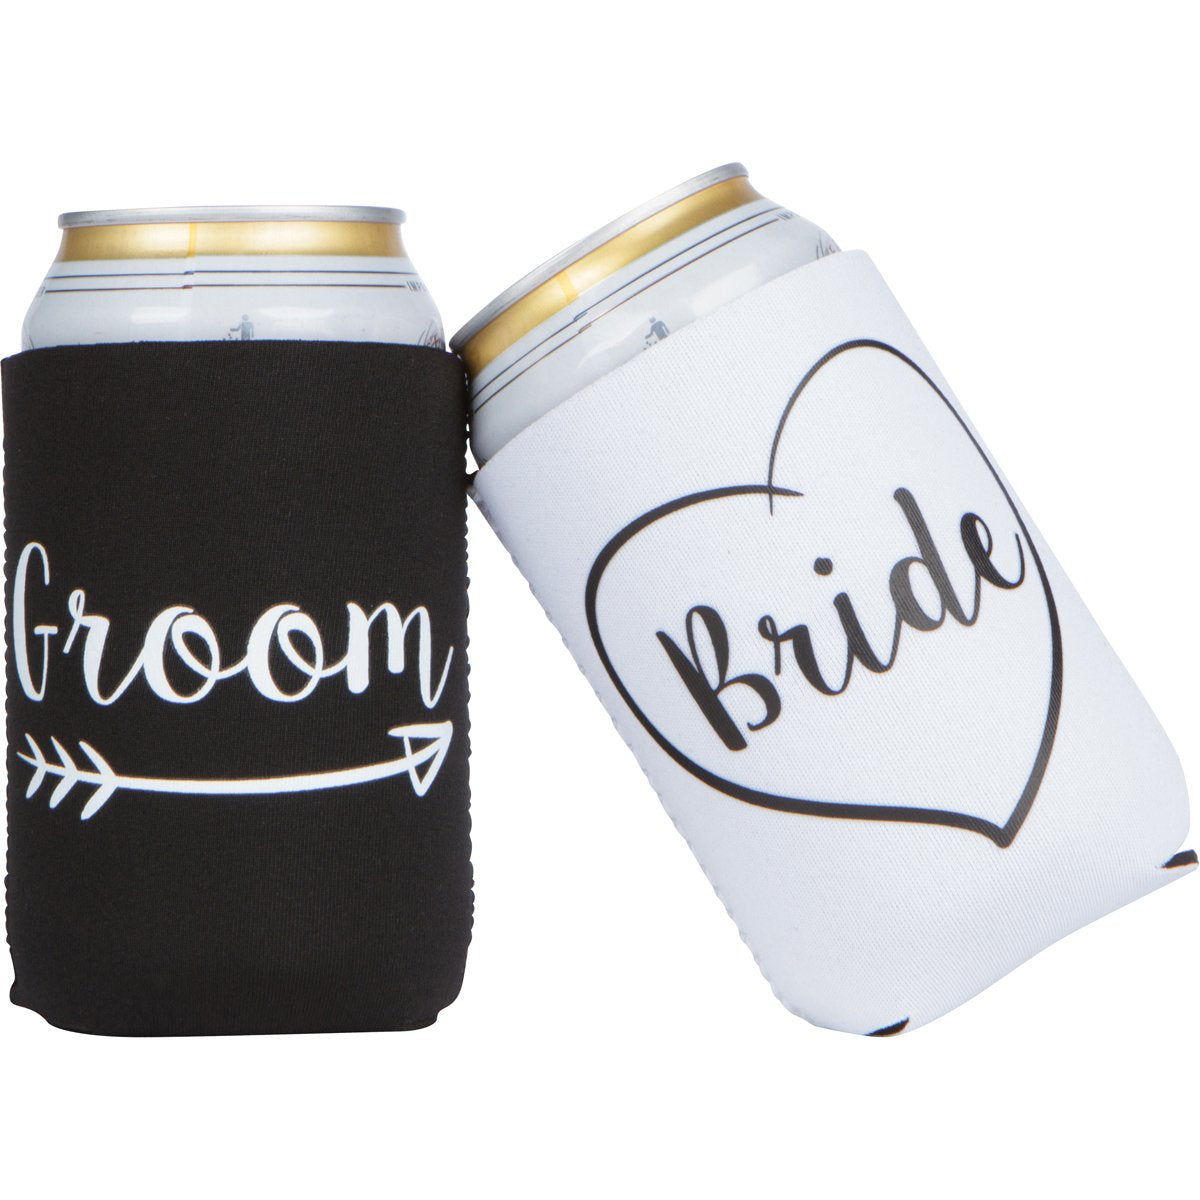 Cute Wedding Gifts - Bride and Groom Novelty Can Cooler Combo - Engagement Gift for Couples - gift-siri